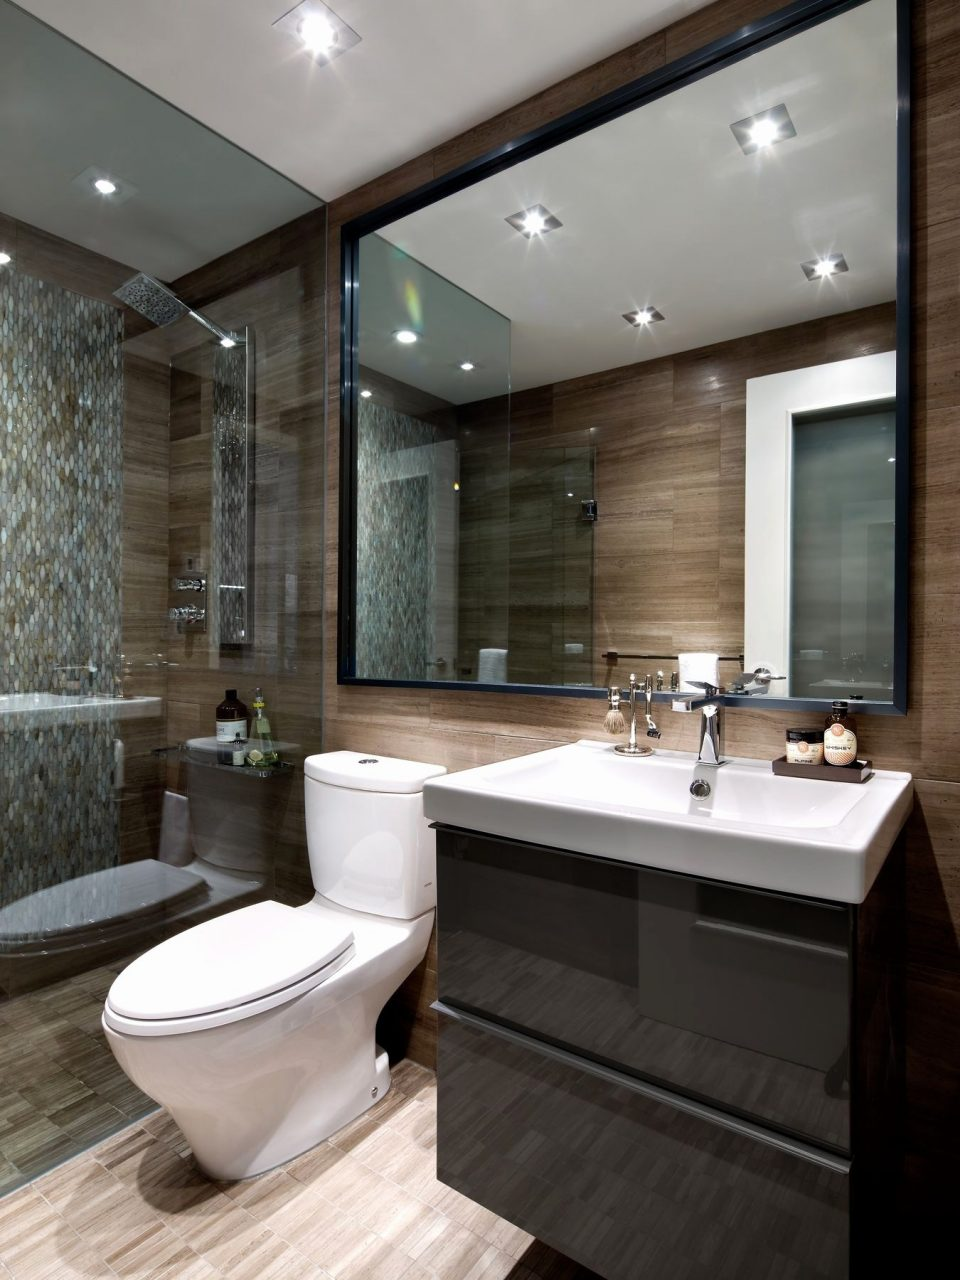 Bathroom Bathroom Renovation Best Of Bathroom Remodel Pics Best